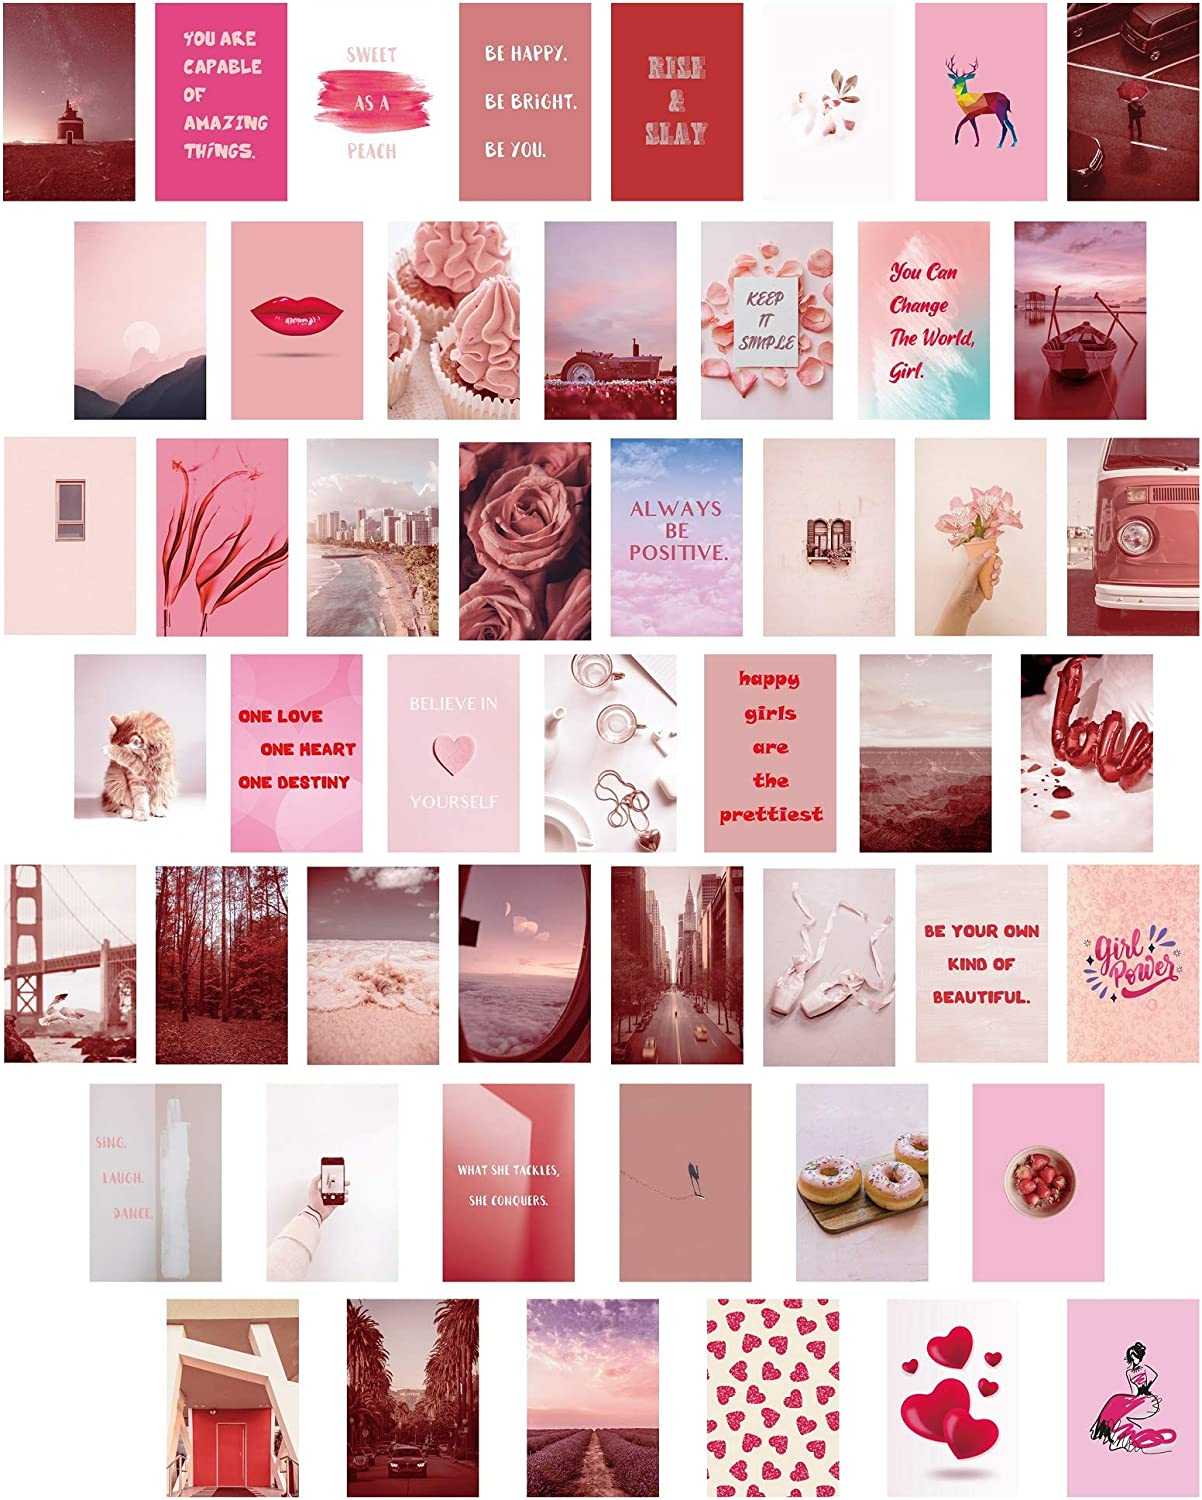 MINI ZOZI Pink Aesthetic Wall Collage Kit for Room Decor, Set of 50 in 1 Pack, 4x6 INCH, Small Photos Pictures Posters for Teens and Little Girls Bedroom Dorm Walls Art Decors